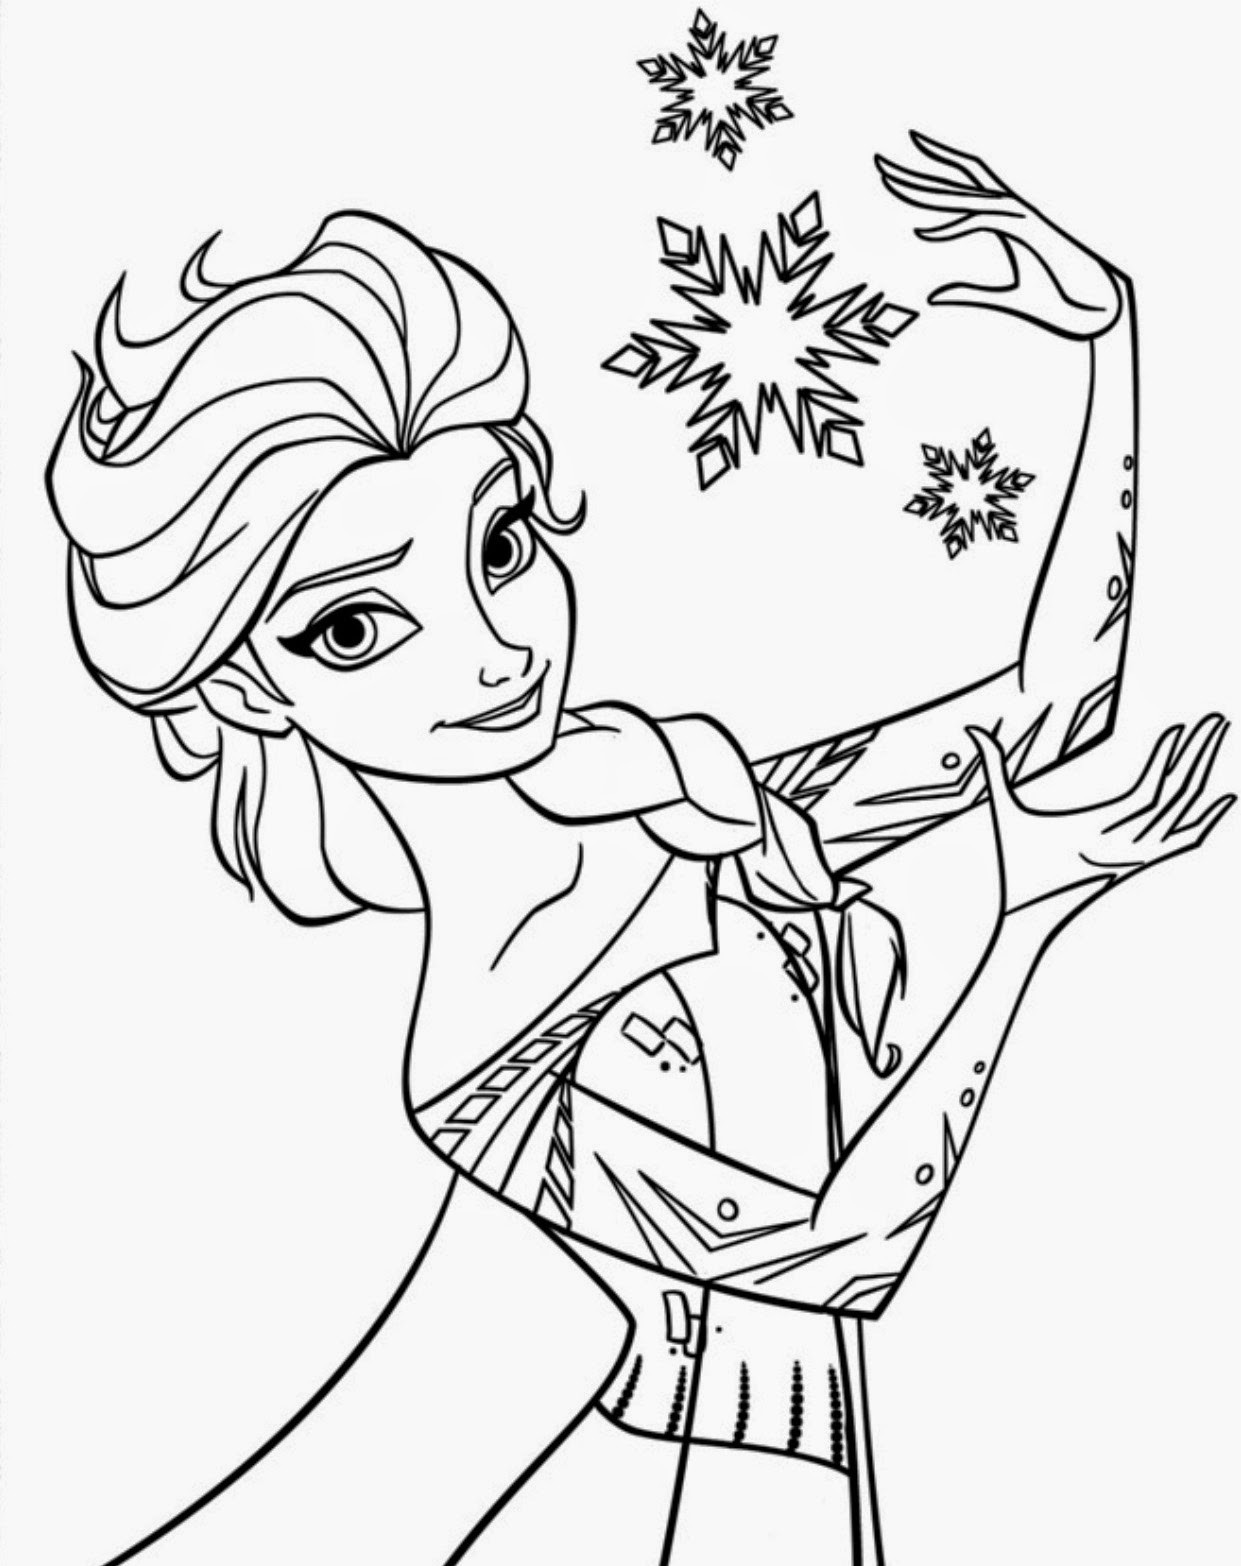 Best ideas about Disney Free Coloring Pages Printables . Save or Pin 15 Beautiful Disney Frozen Coloring Pages Free Instant Now.